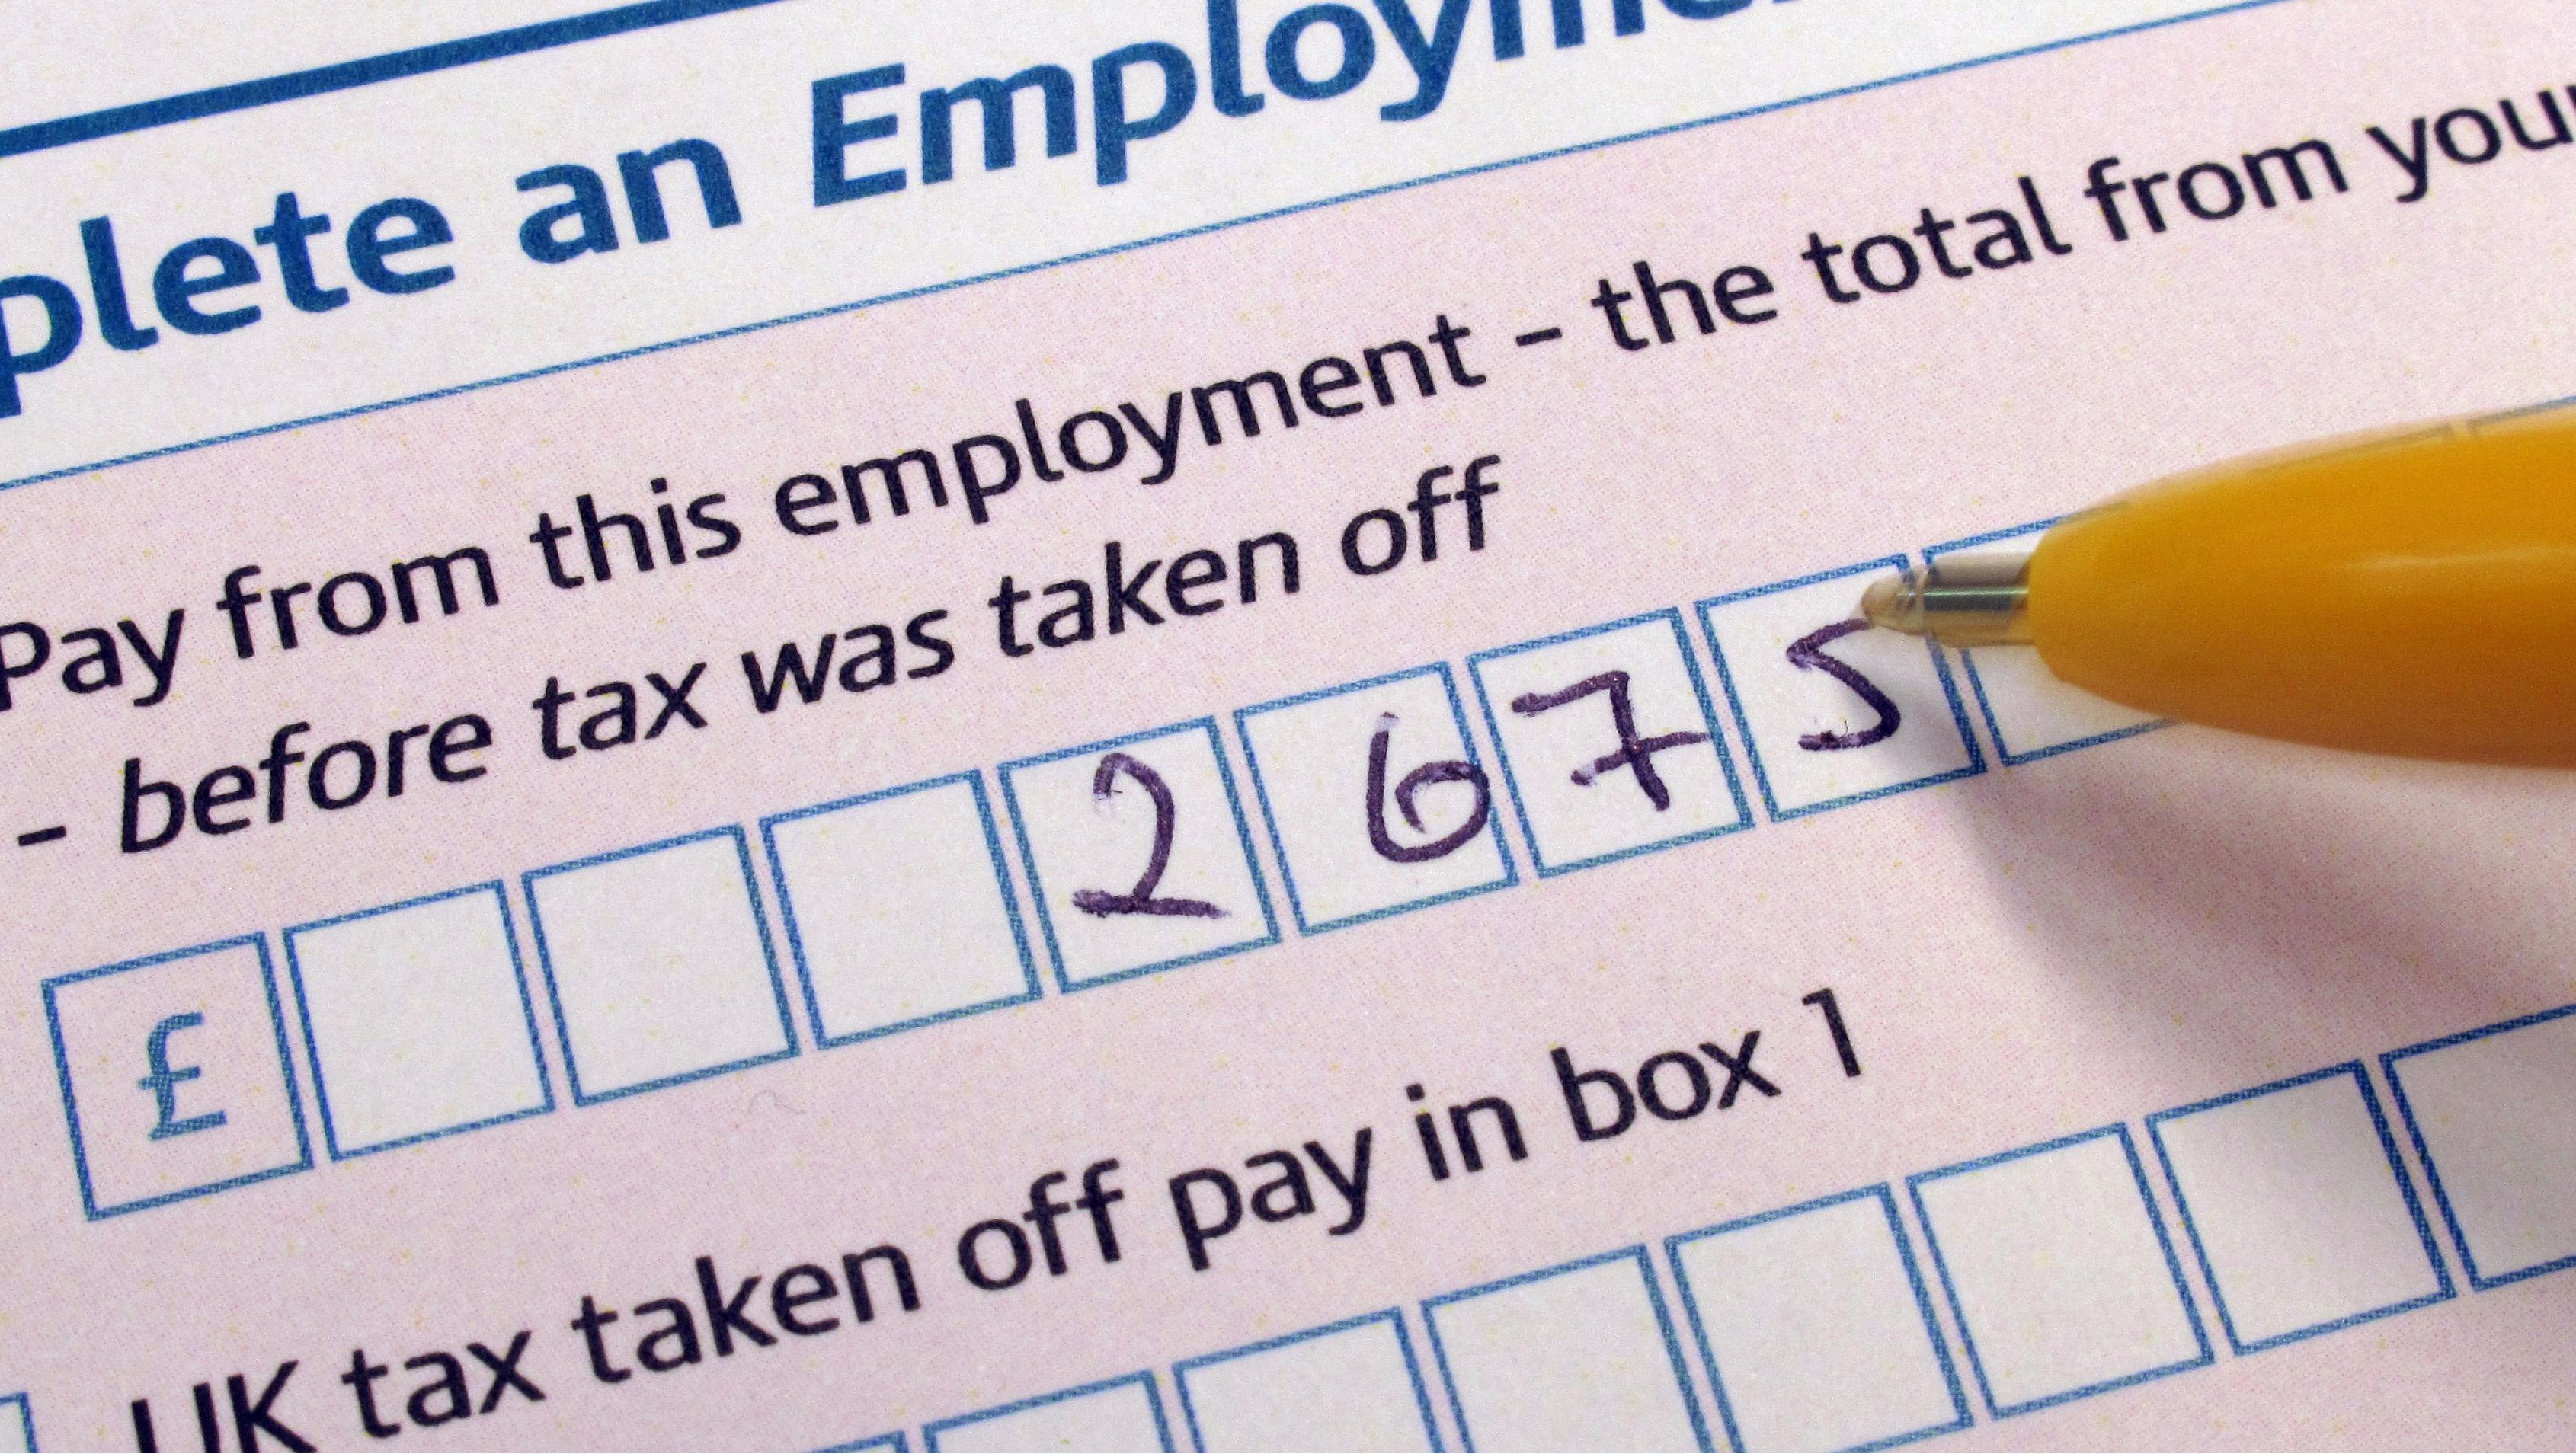 Tax Refund Scam Targets British Taxpayers - Softpedia